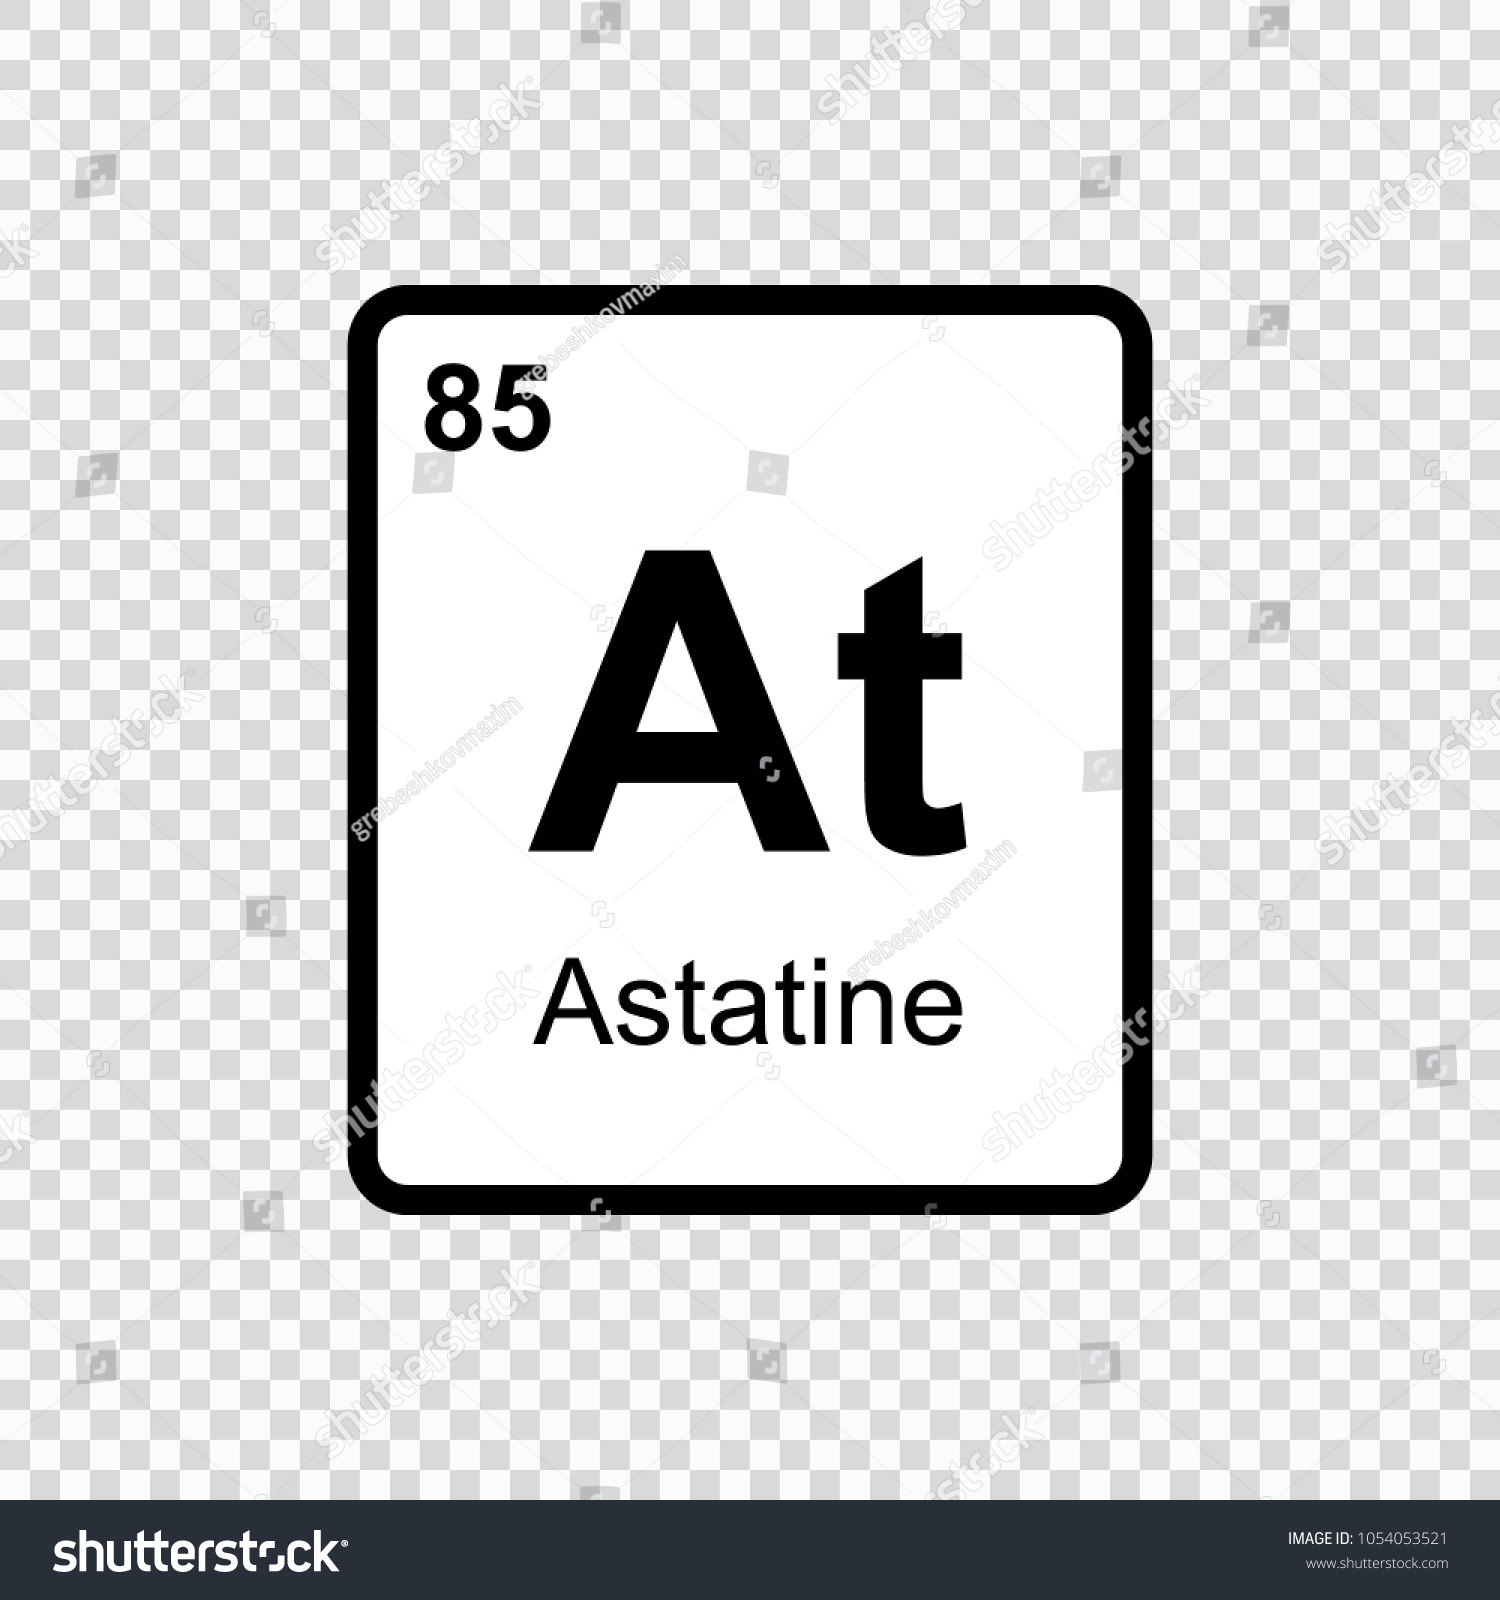 Astatine chemical element sign atomic number stock vector hd astatine chemical element sign with atomic number chemical element of periodic table urtaz Image collections